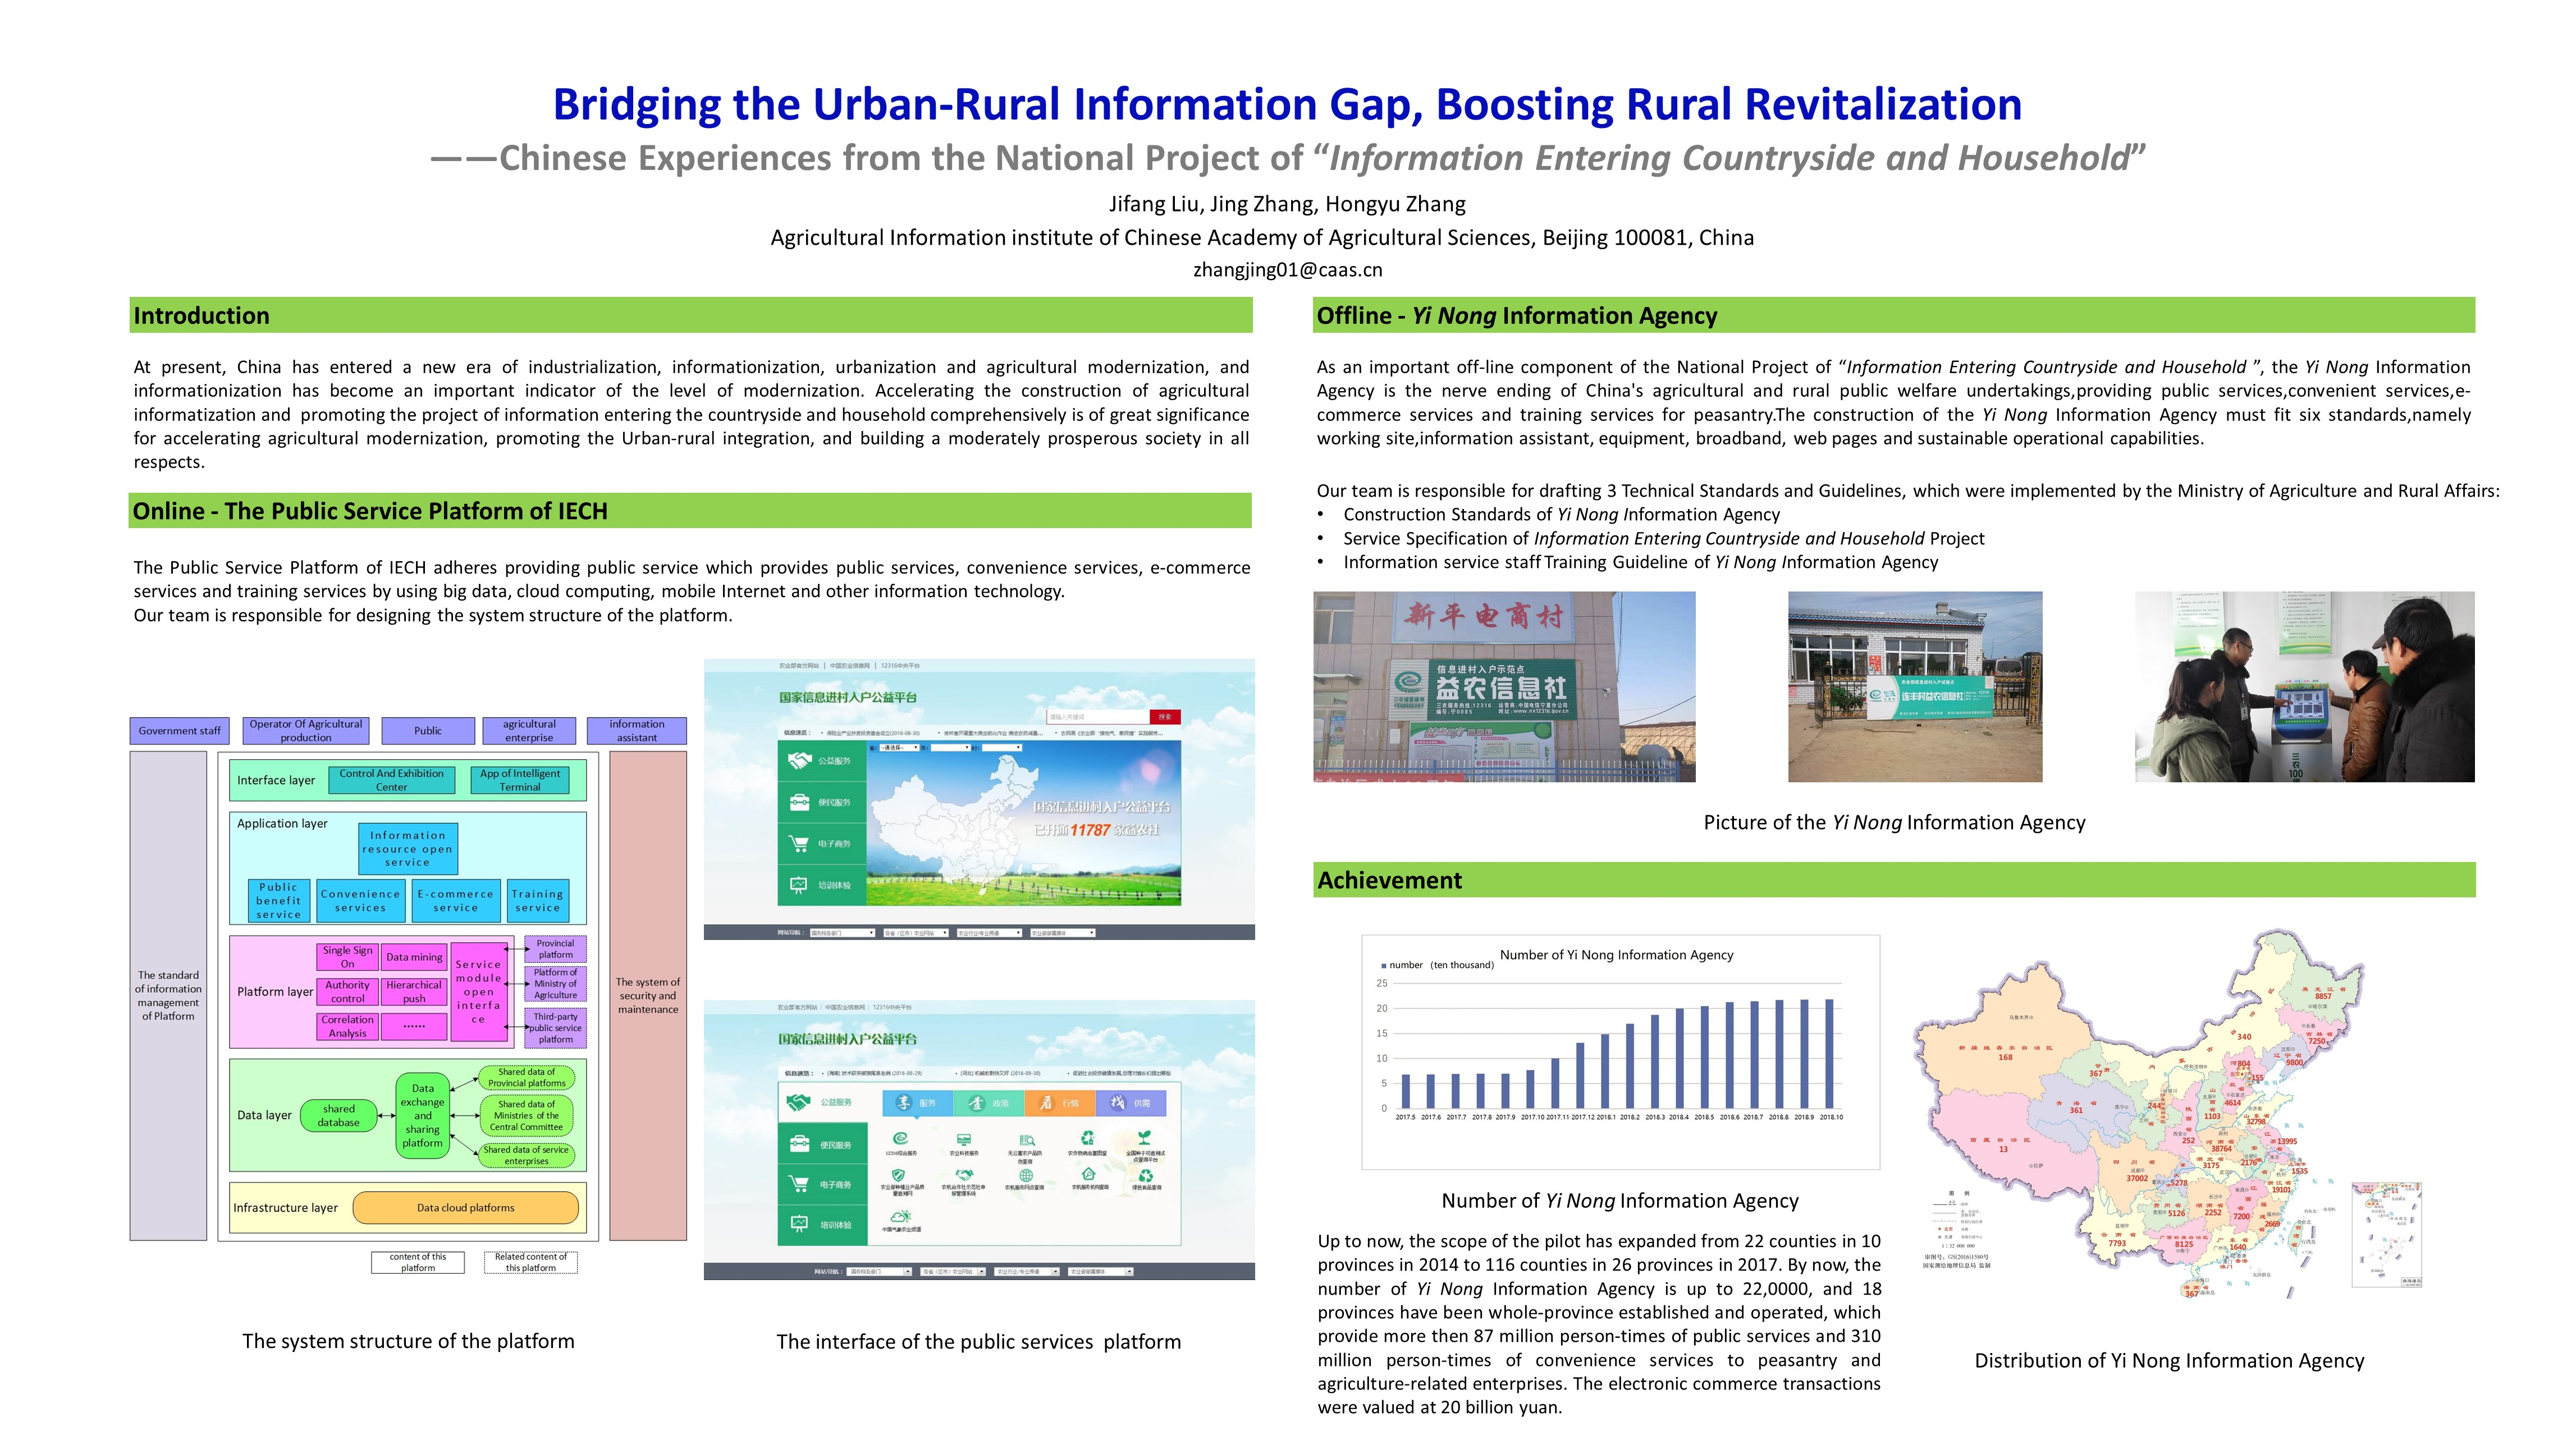 Bridging the Urban-Rural Information Gap, Boosting Rural Revitalization